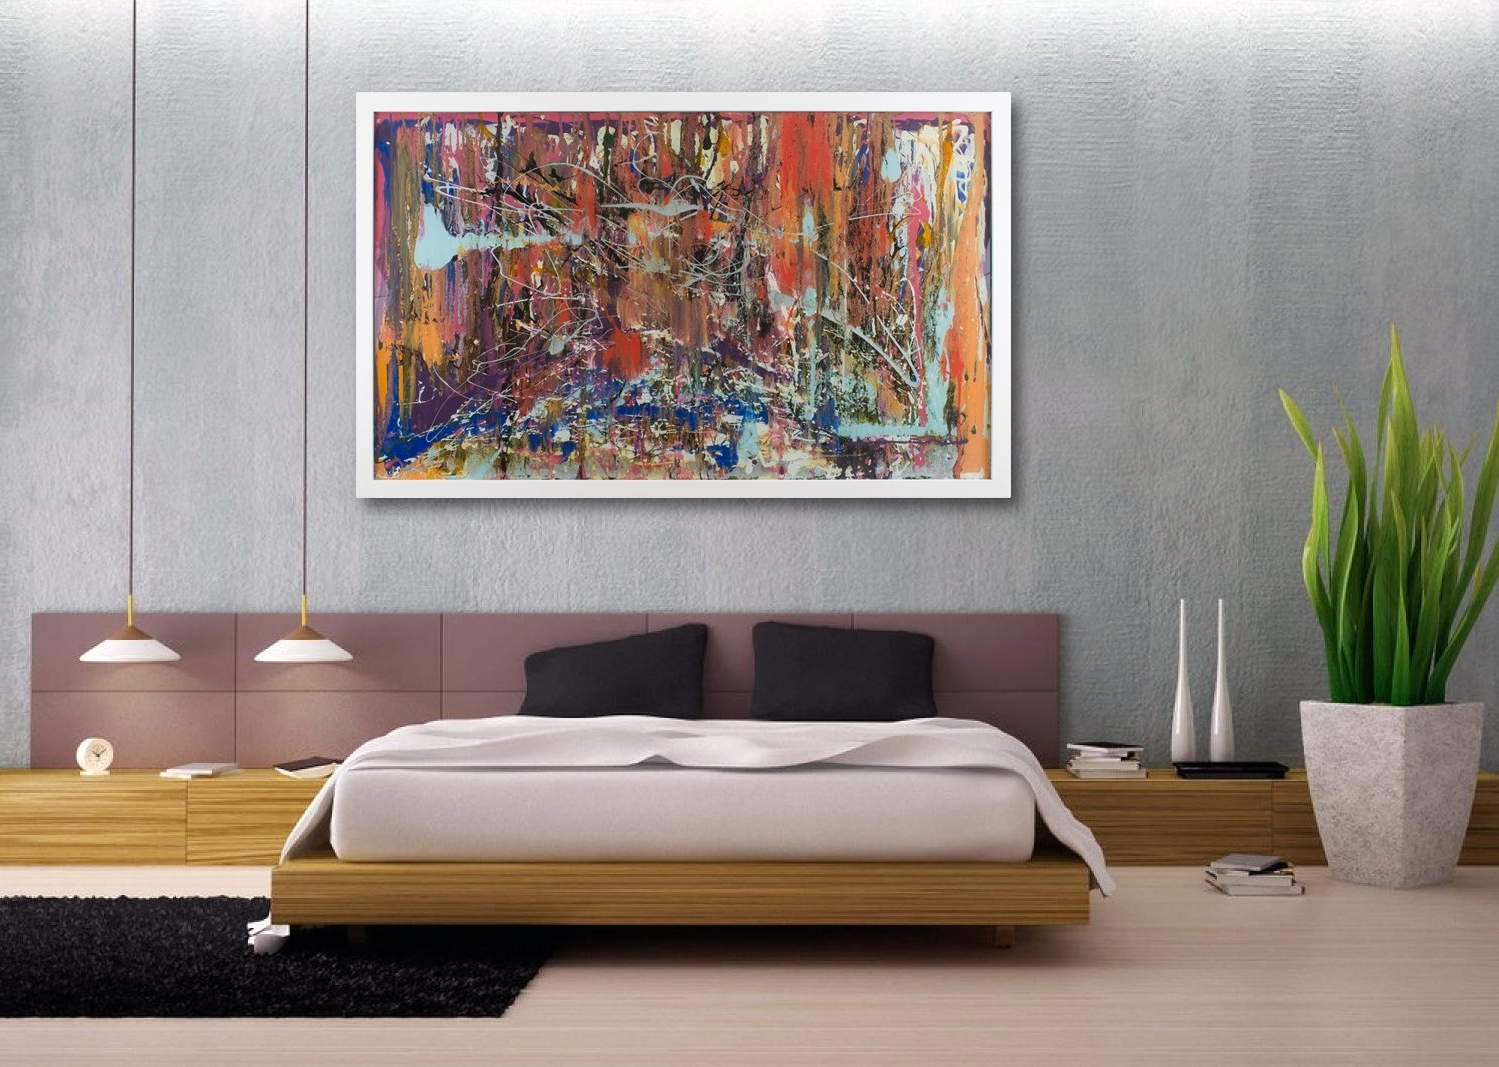 Trendy Expensive Large Canvas Wall Art Bedroom — Joanne Russo Homesjoanne Intended For Large Canvas Wall Art (View 13 of 15)